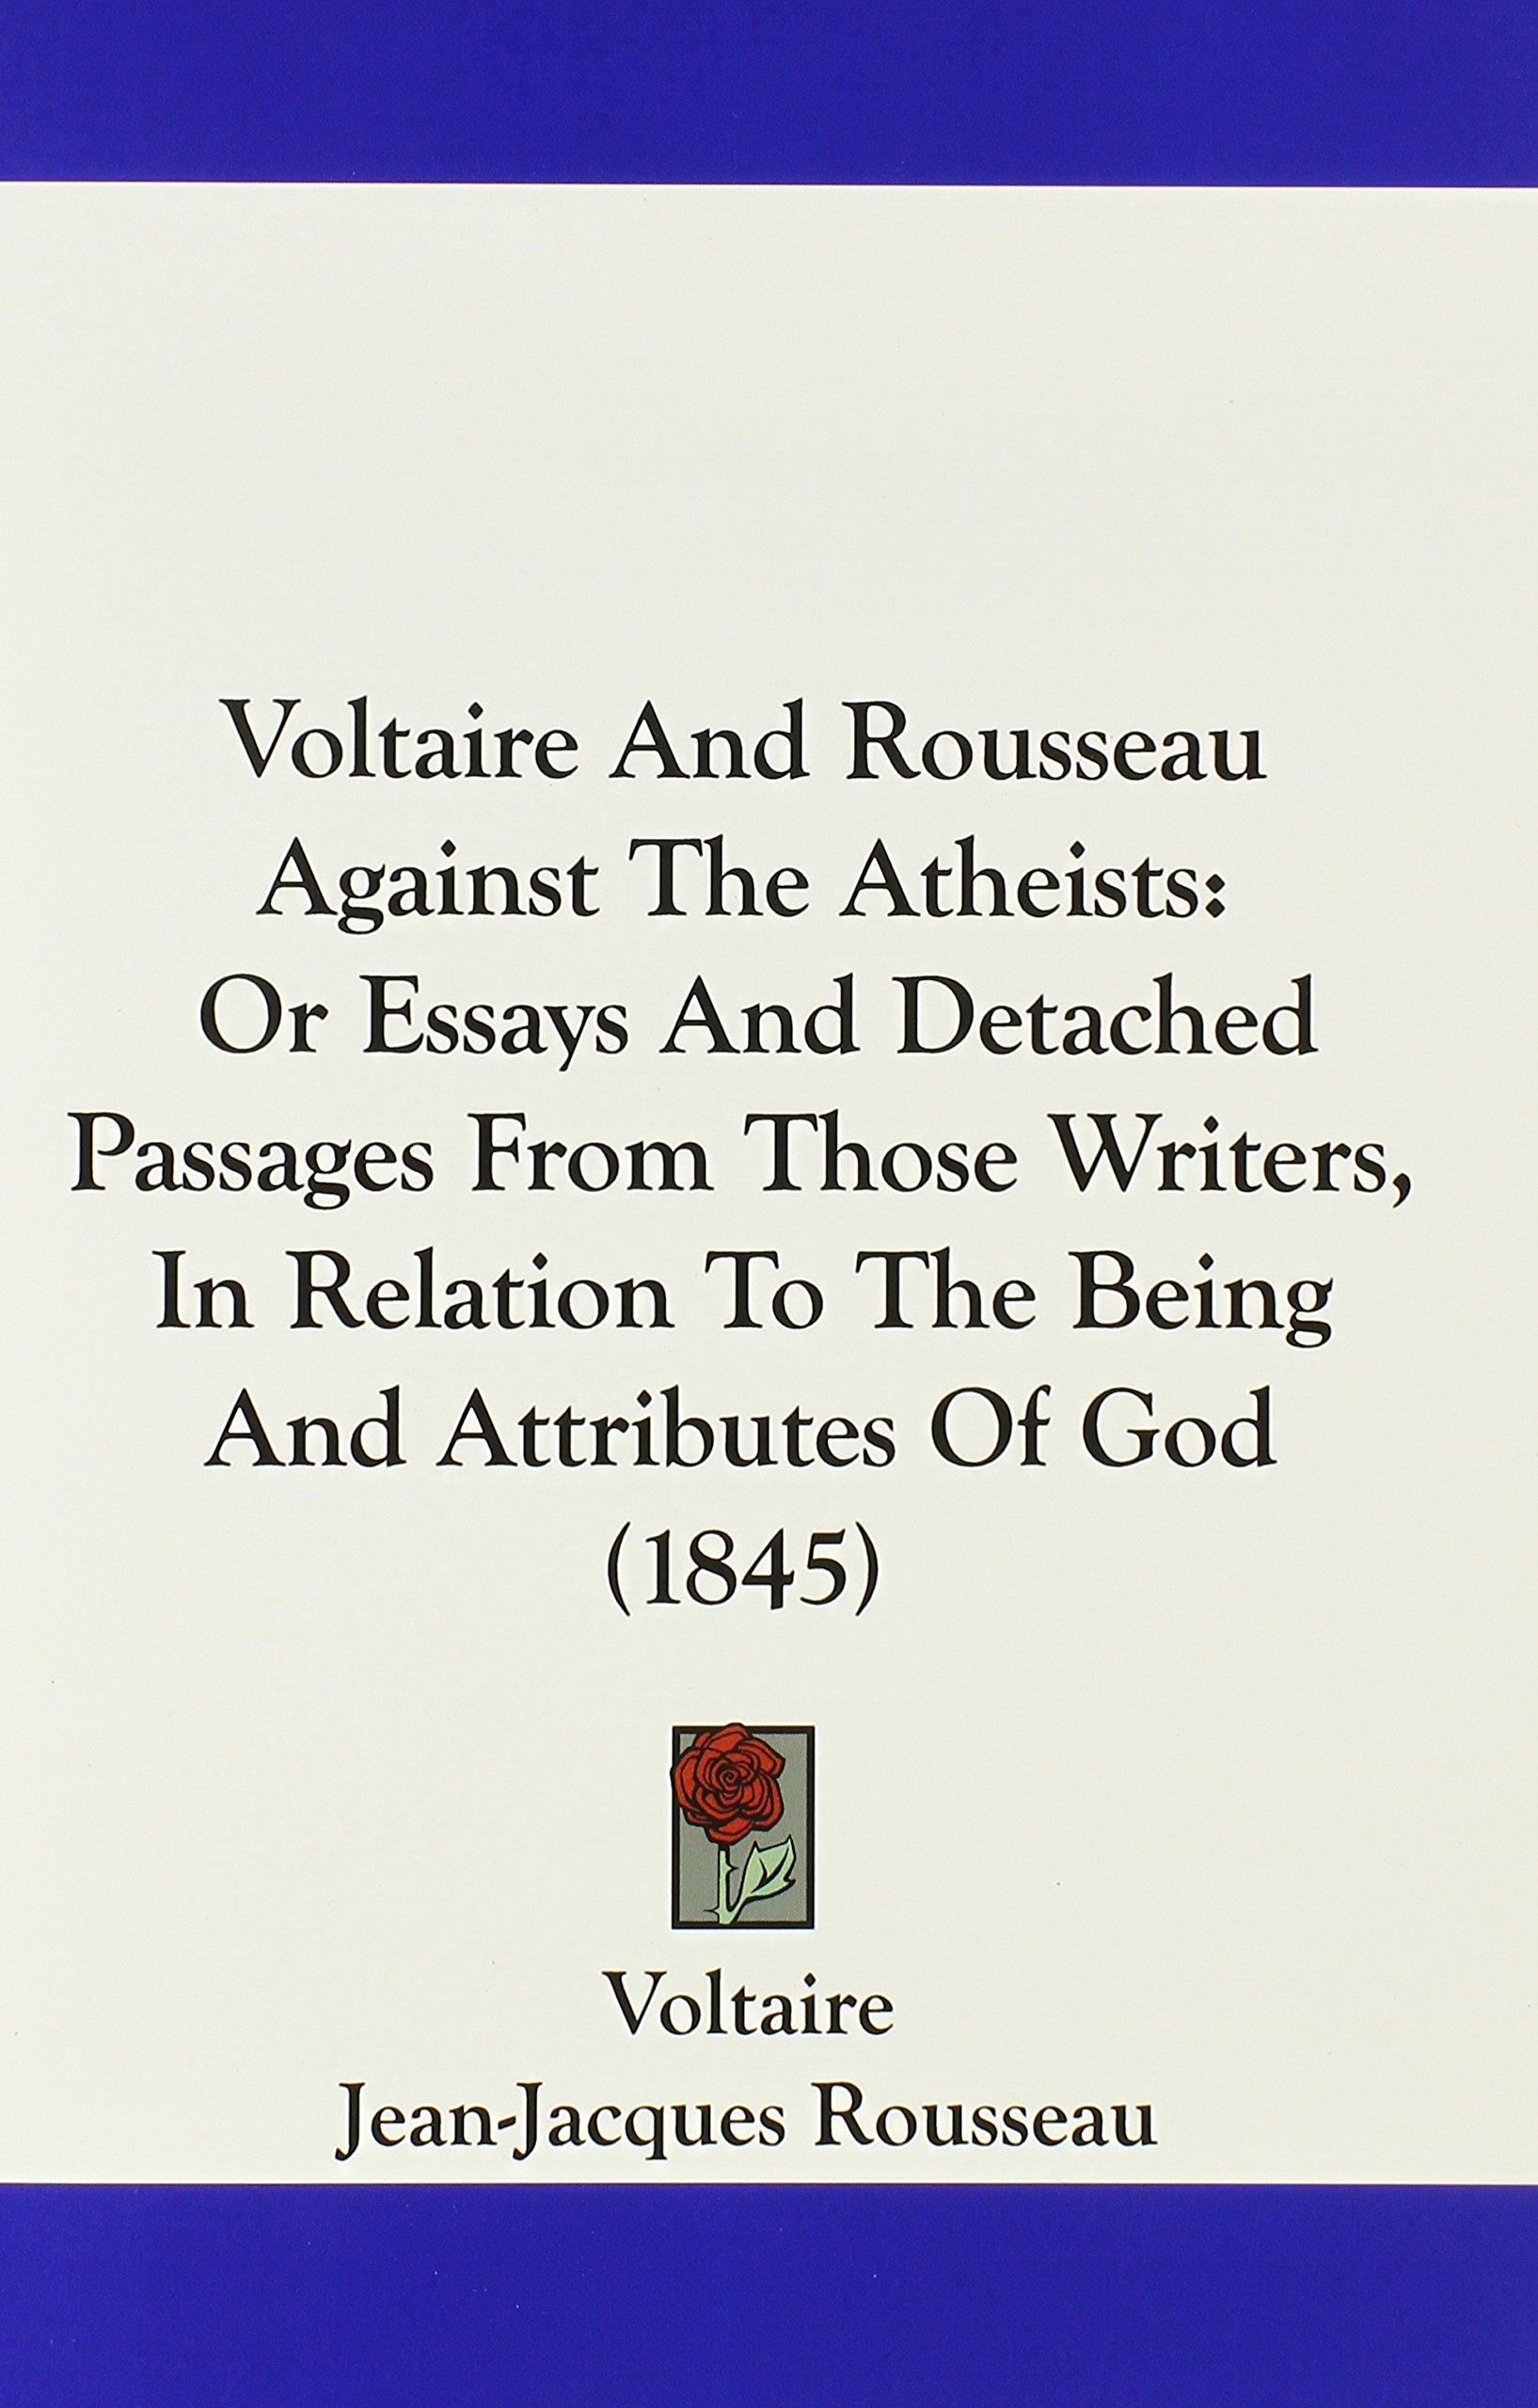 Writing Essay Papers Voltaire And Rousseau Against The Atheists Or Essays And Detached Passages  From Those Writers In Relation To The Being And Attributes Of God    Living A Healthy Lifestyle Essay also English Essay Pmr Voltaire And Rousseau Against The Atheists Or Essays And Detached  Locavore Synthesis Essay